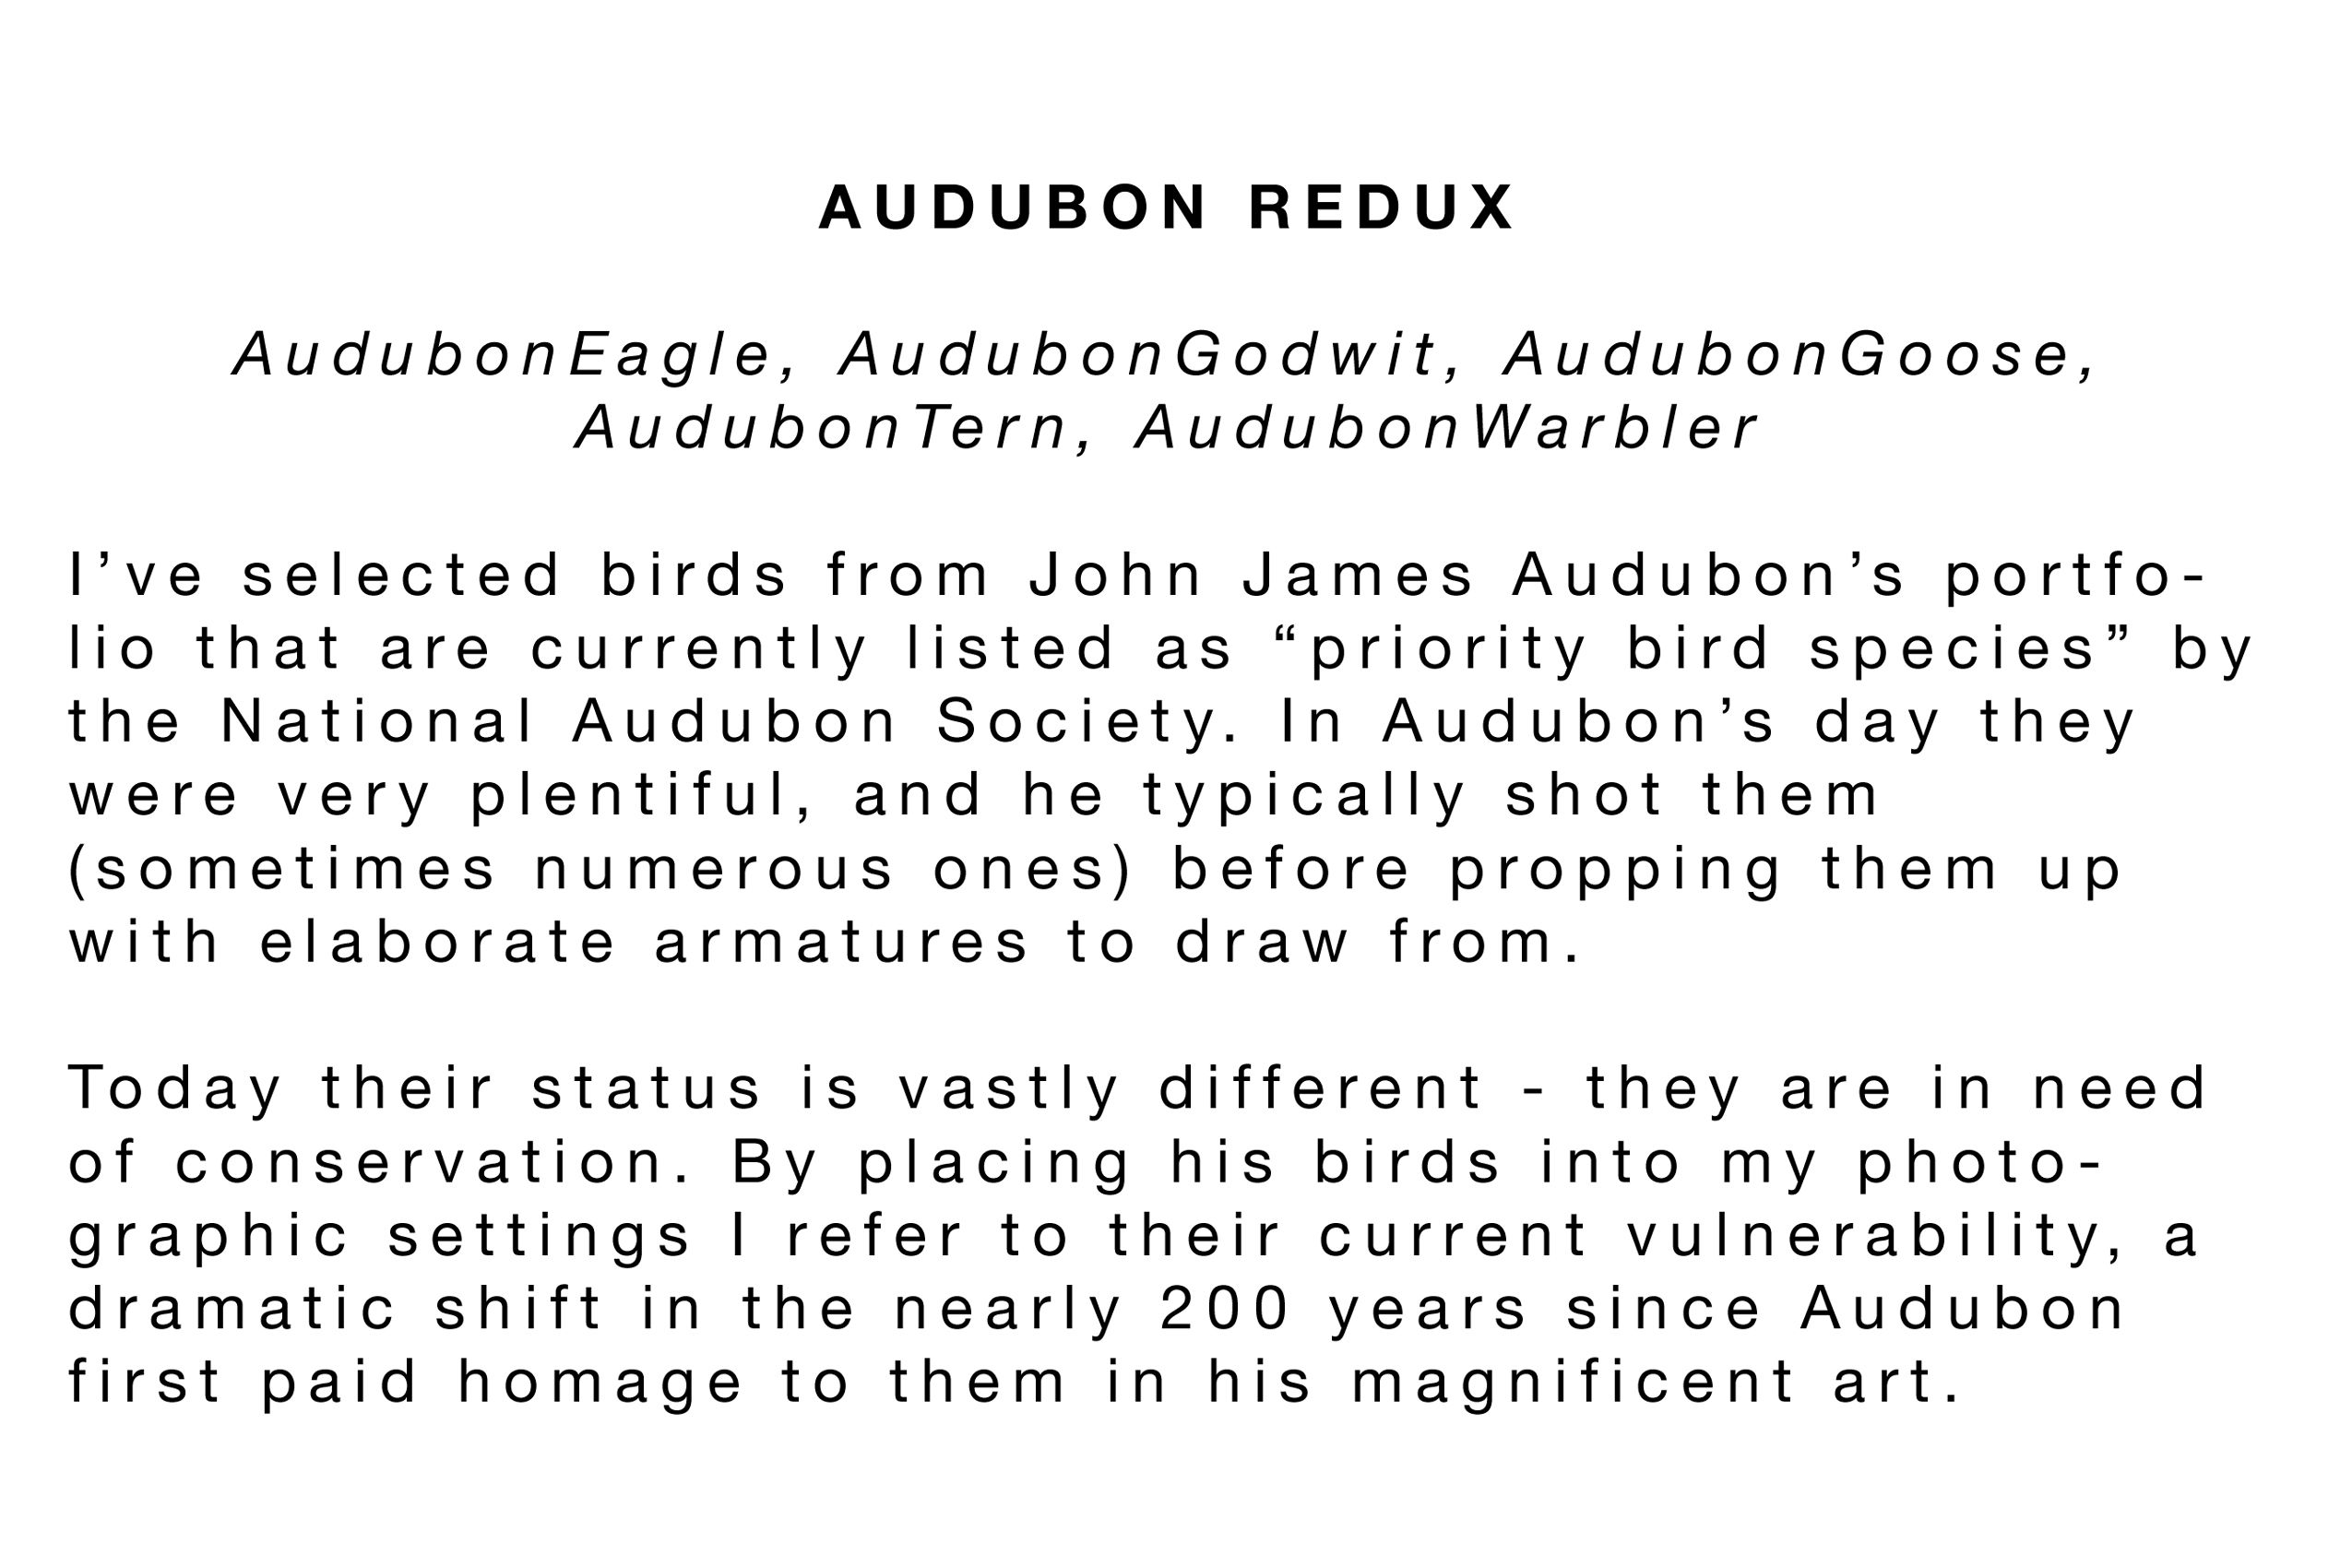 Audubon Statement